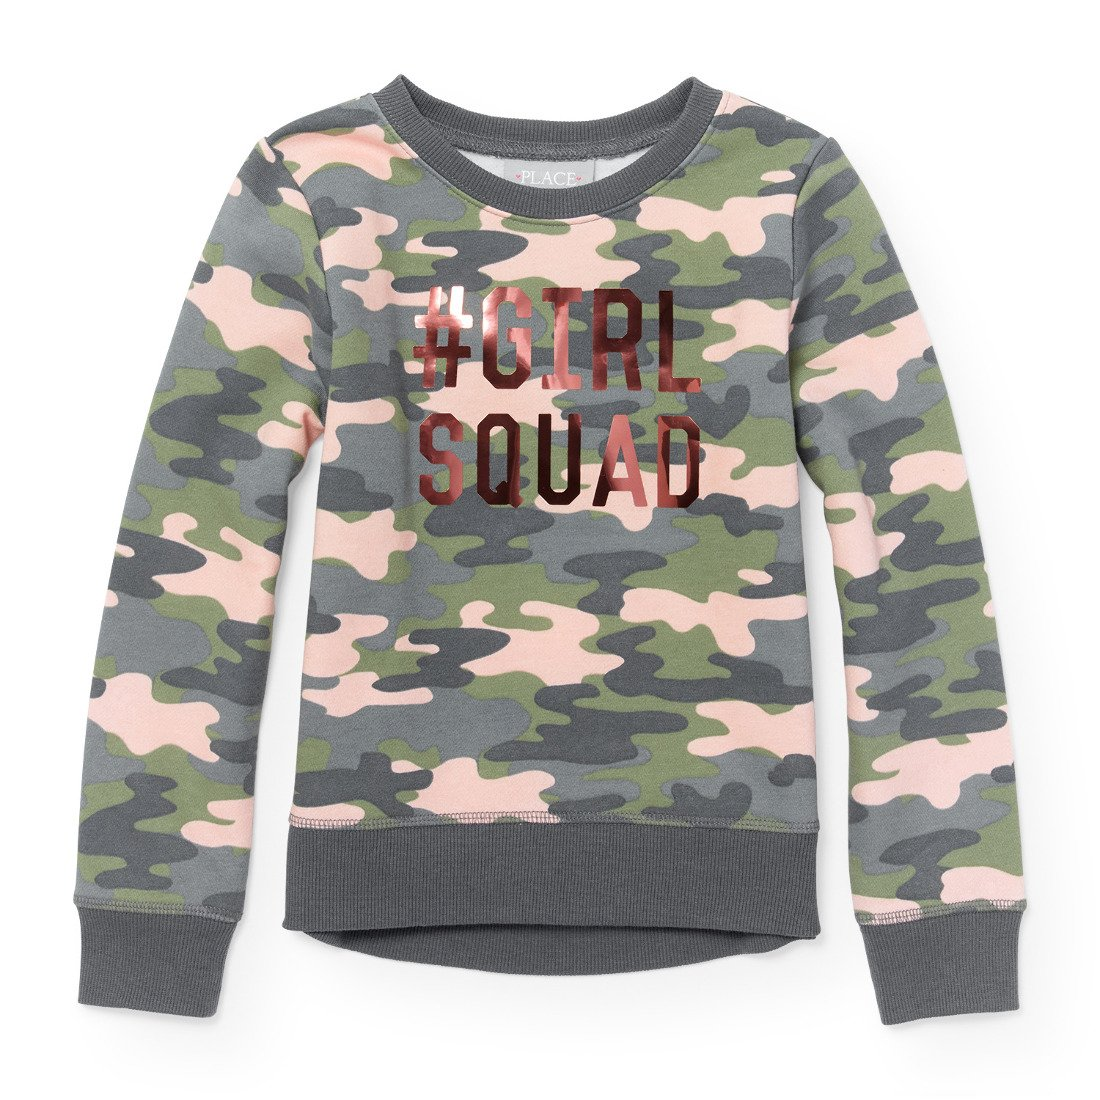 The Childrens Place Big Girls Camouflage Active Graphic Long Sleeve Top